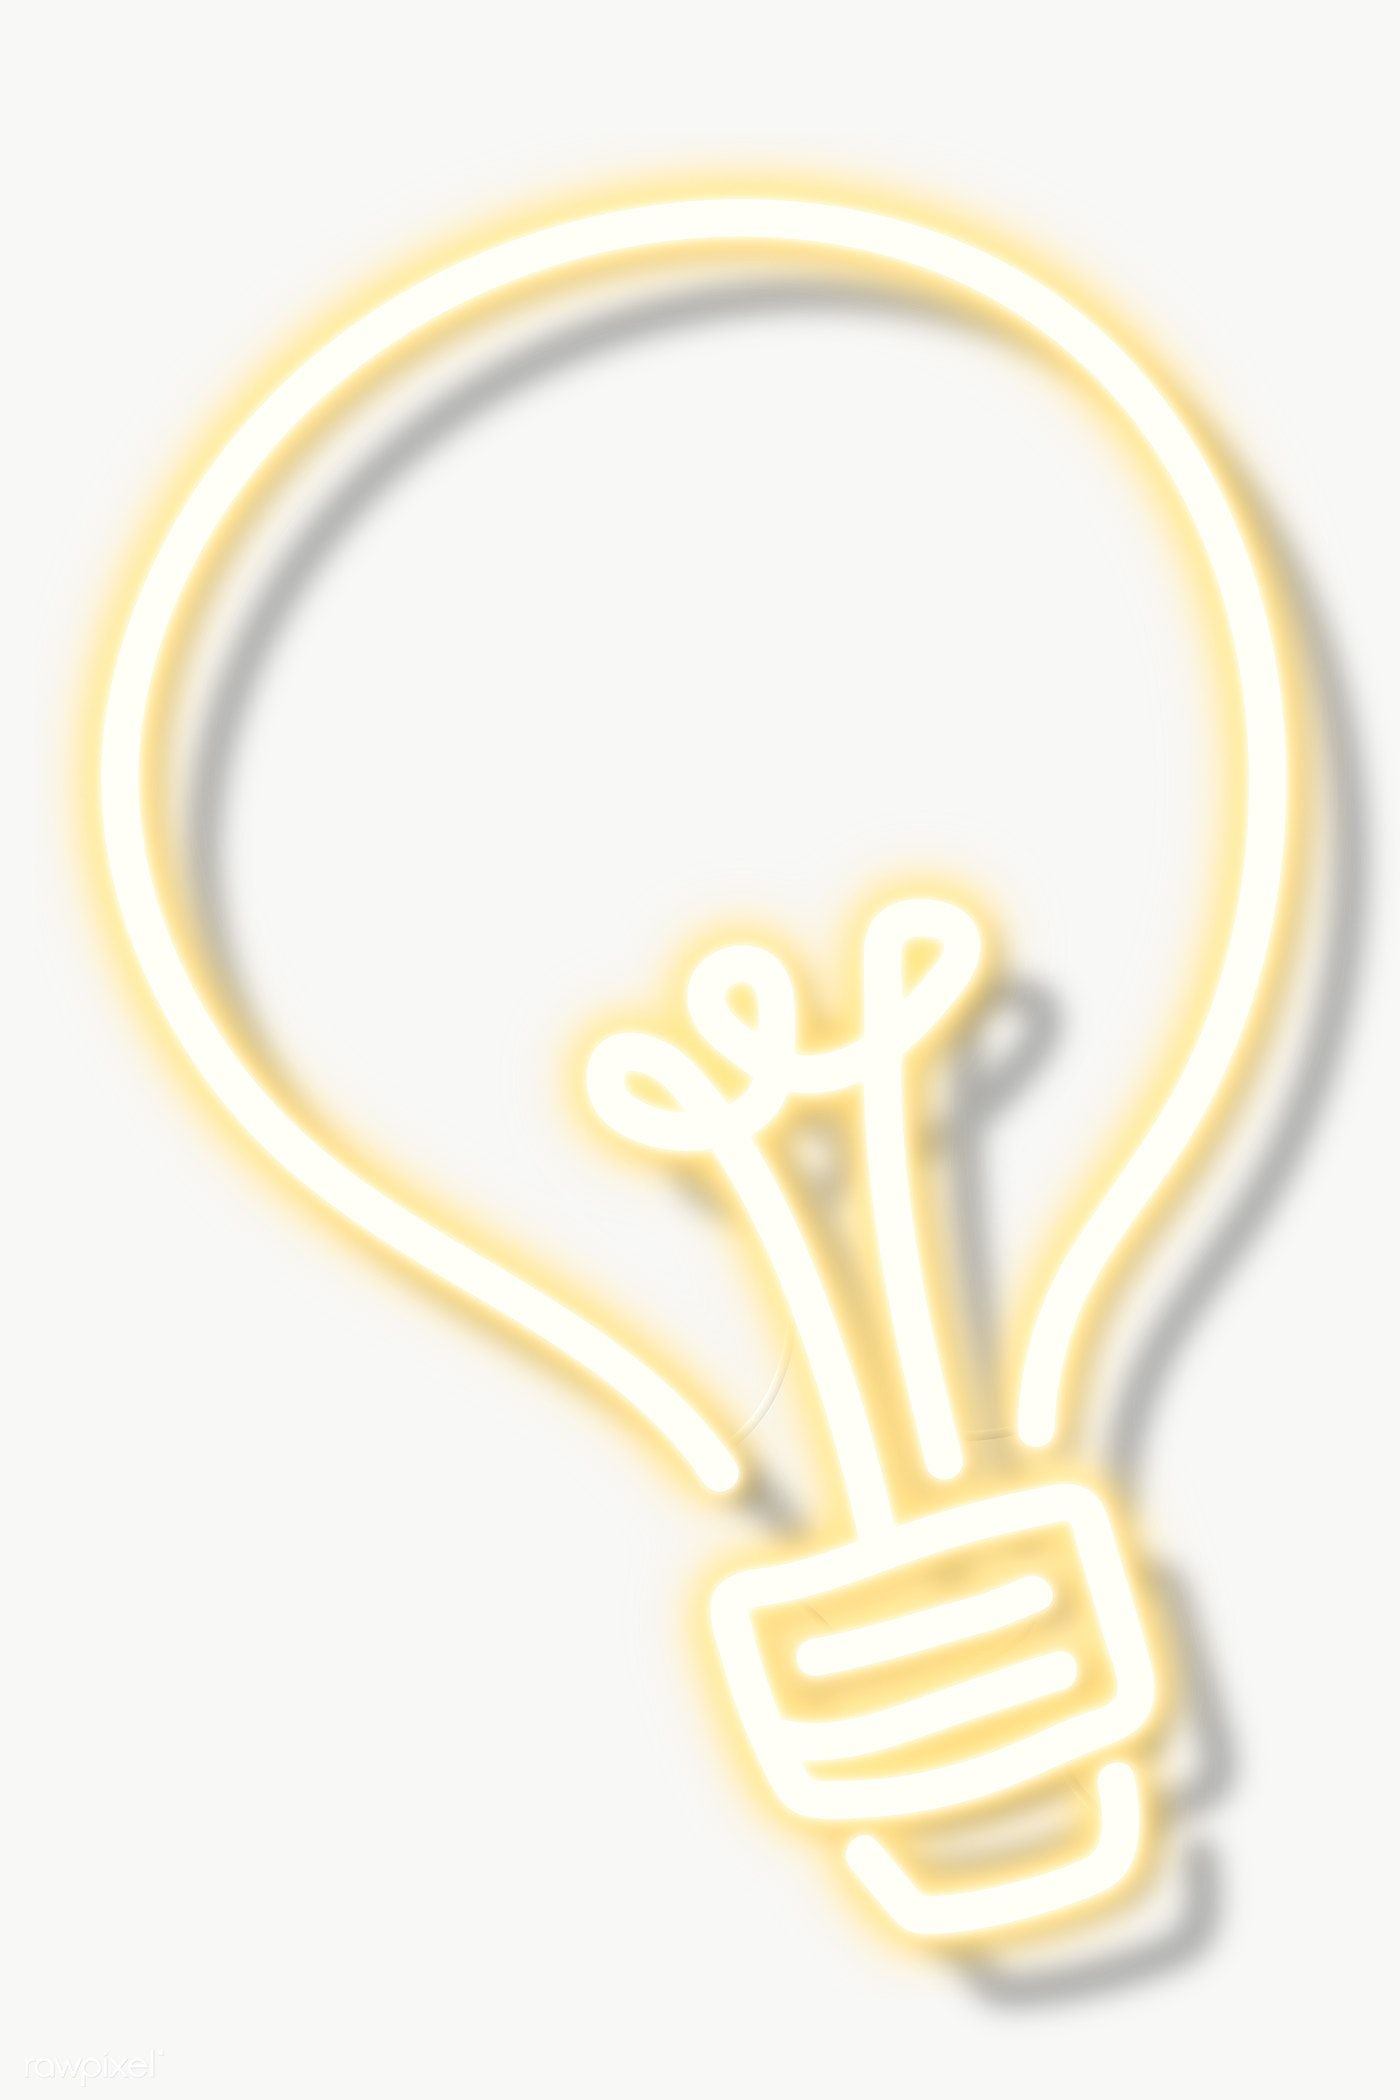 Download Premium Png Of Yellow Light Bulb Neon Sign Transparent Png 2094120 In 2020 Neon Signs Light Bulb Icon Pink Neon Lights